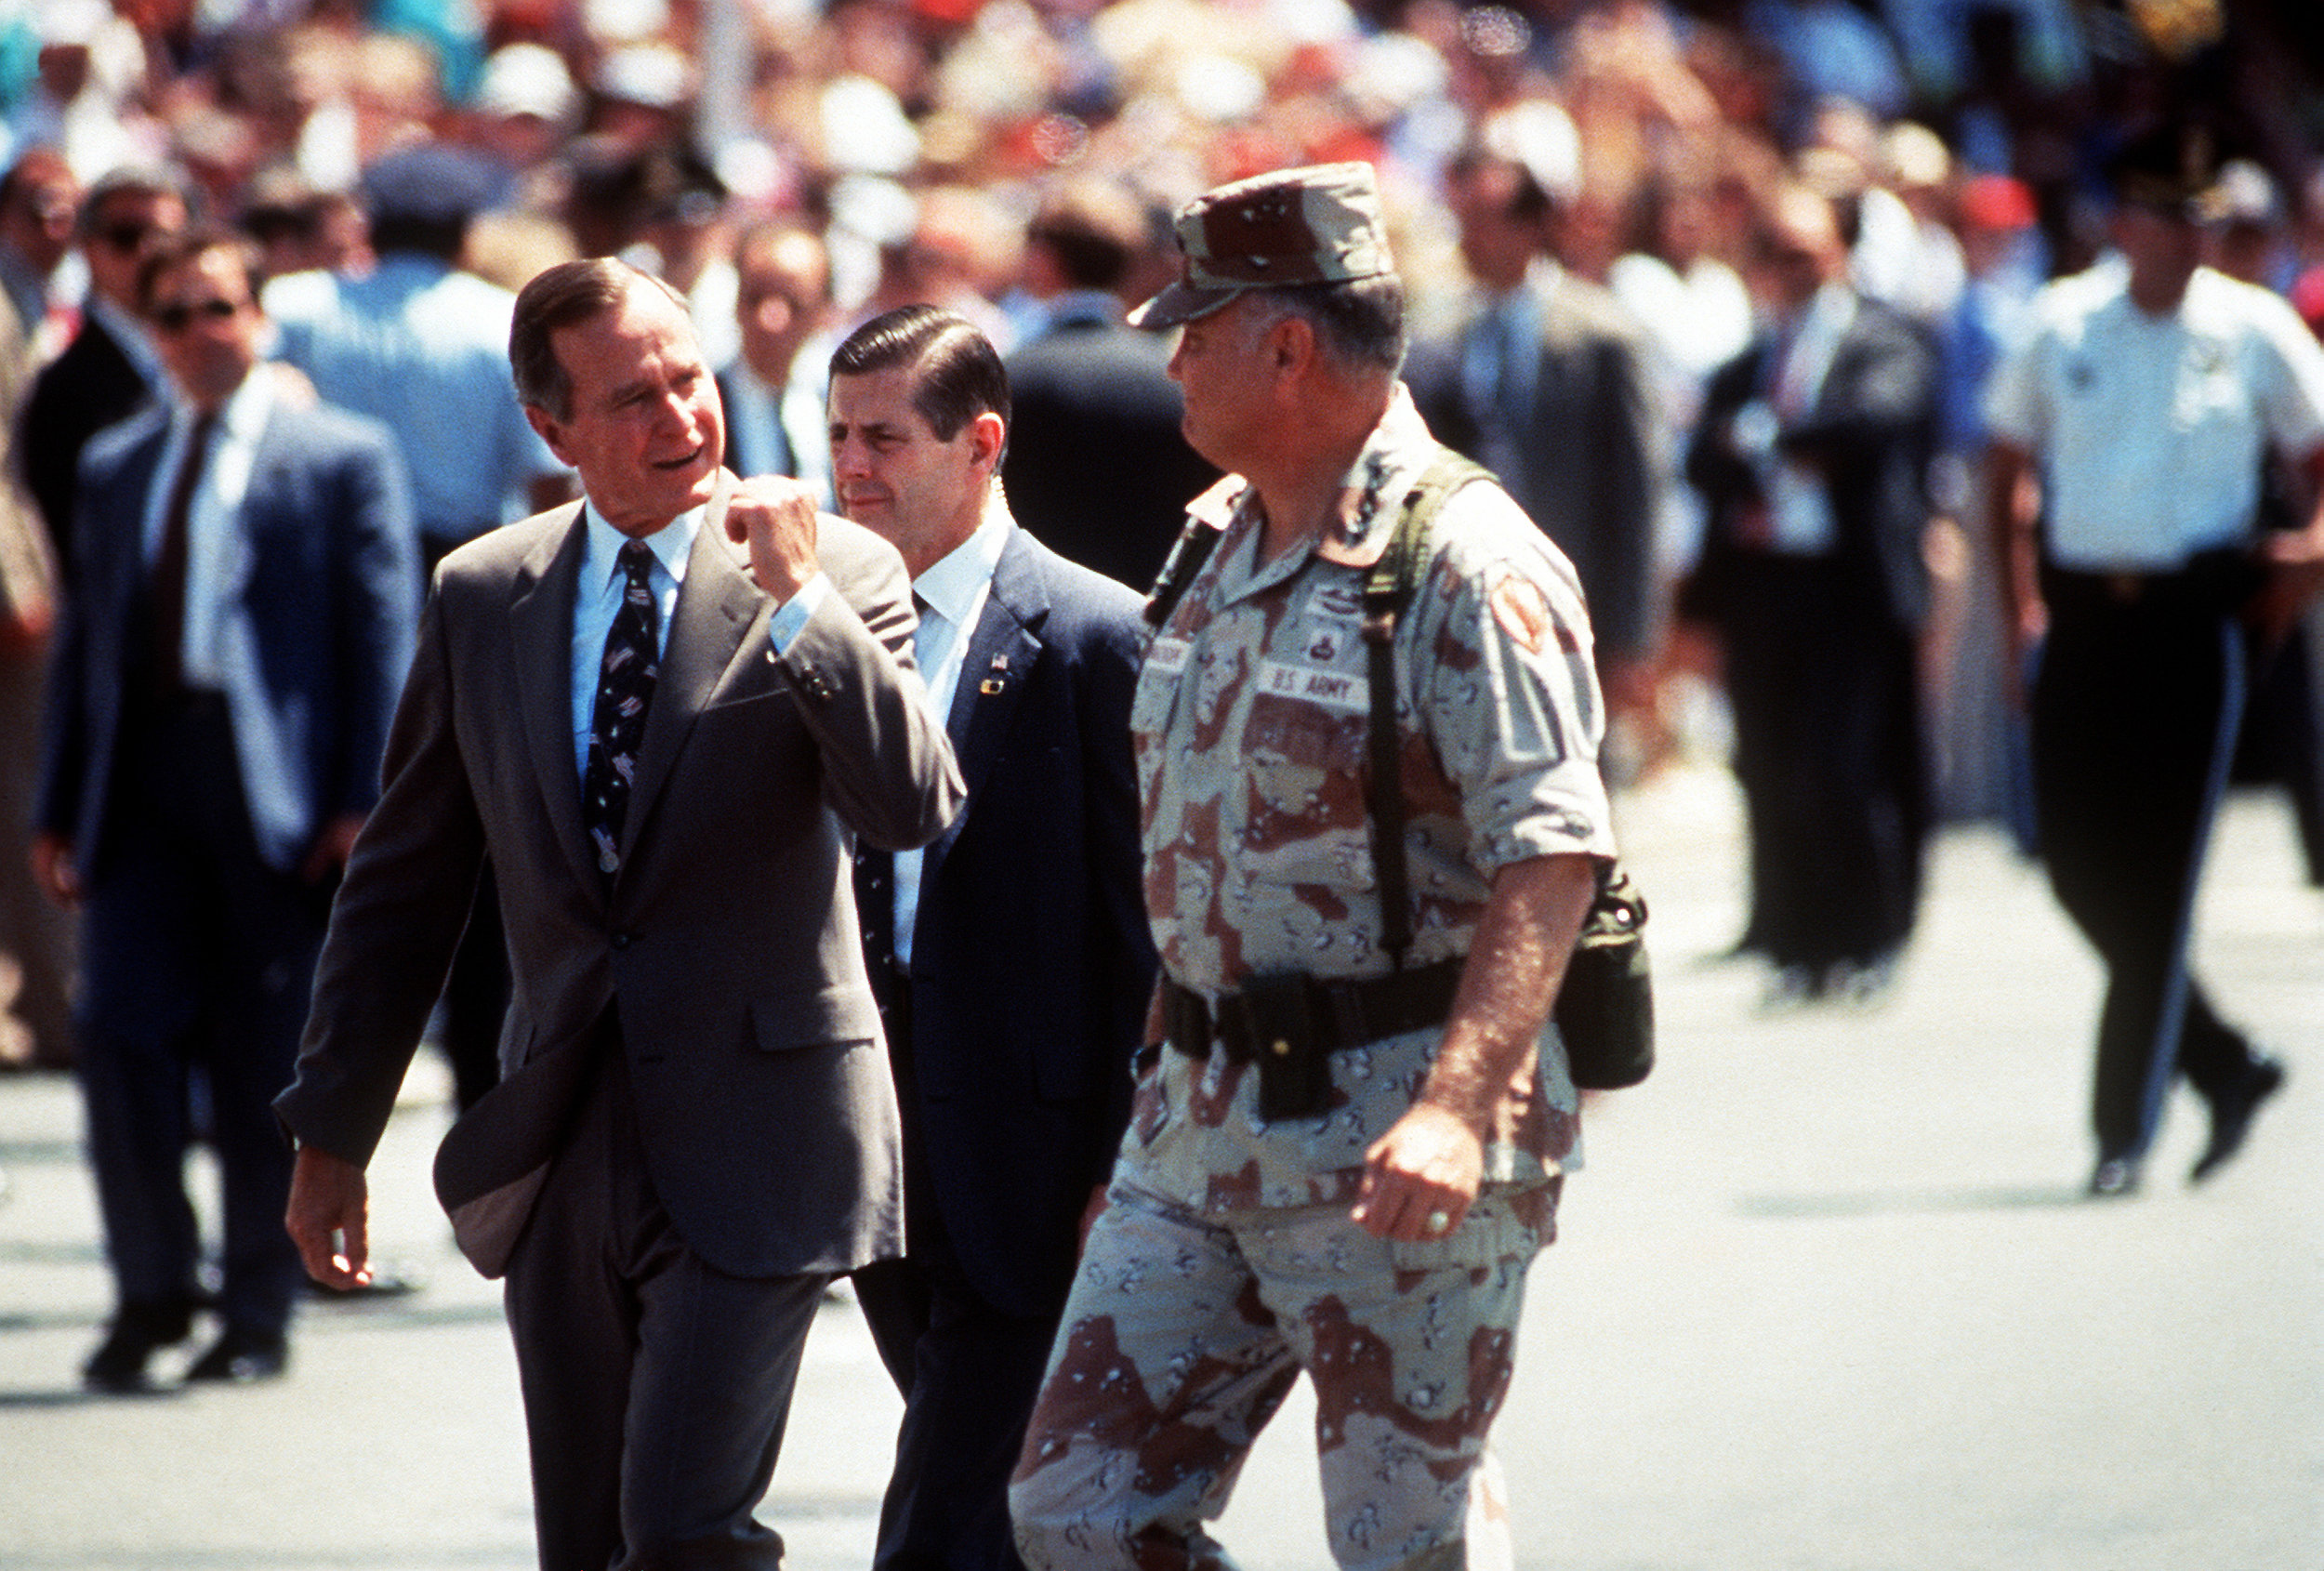 U.S. Army Gen. H. Norman Schwarzkopf (center), commander in chief, U.S. Central Command, walks to the reviewing stand with President George H.W. Bush (left) at the beginning of the National Victory Celebration parade in Washington, D.C., June 8, 1991. The day-long celebration is being held in honor of the coalition forces that liberated Kuwait during Operation Desert Storm. (Courtesy Photo)